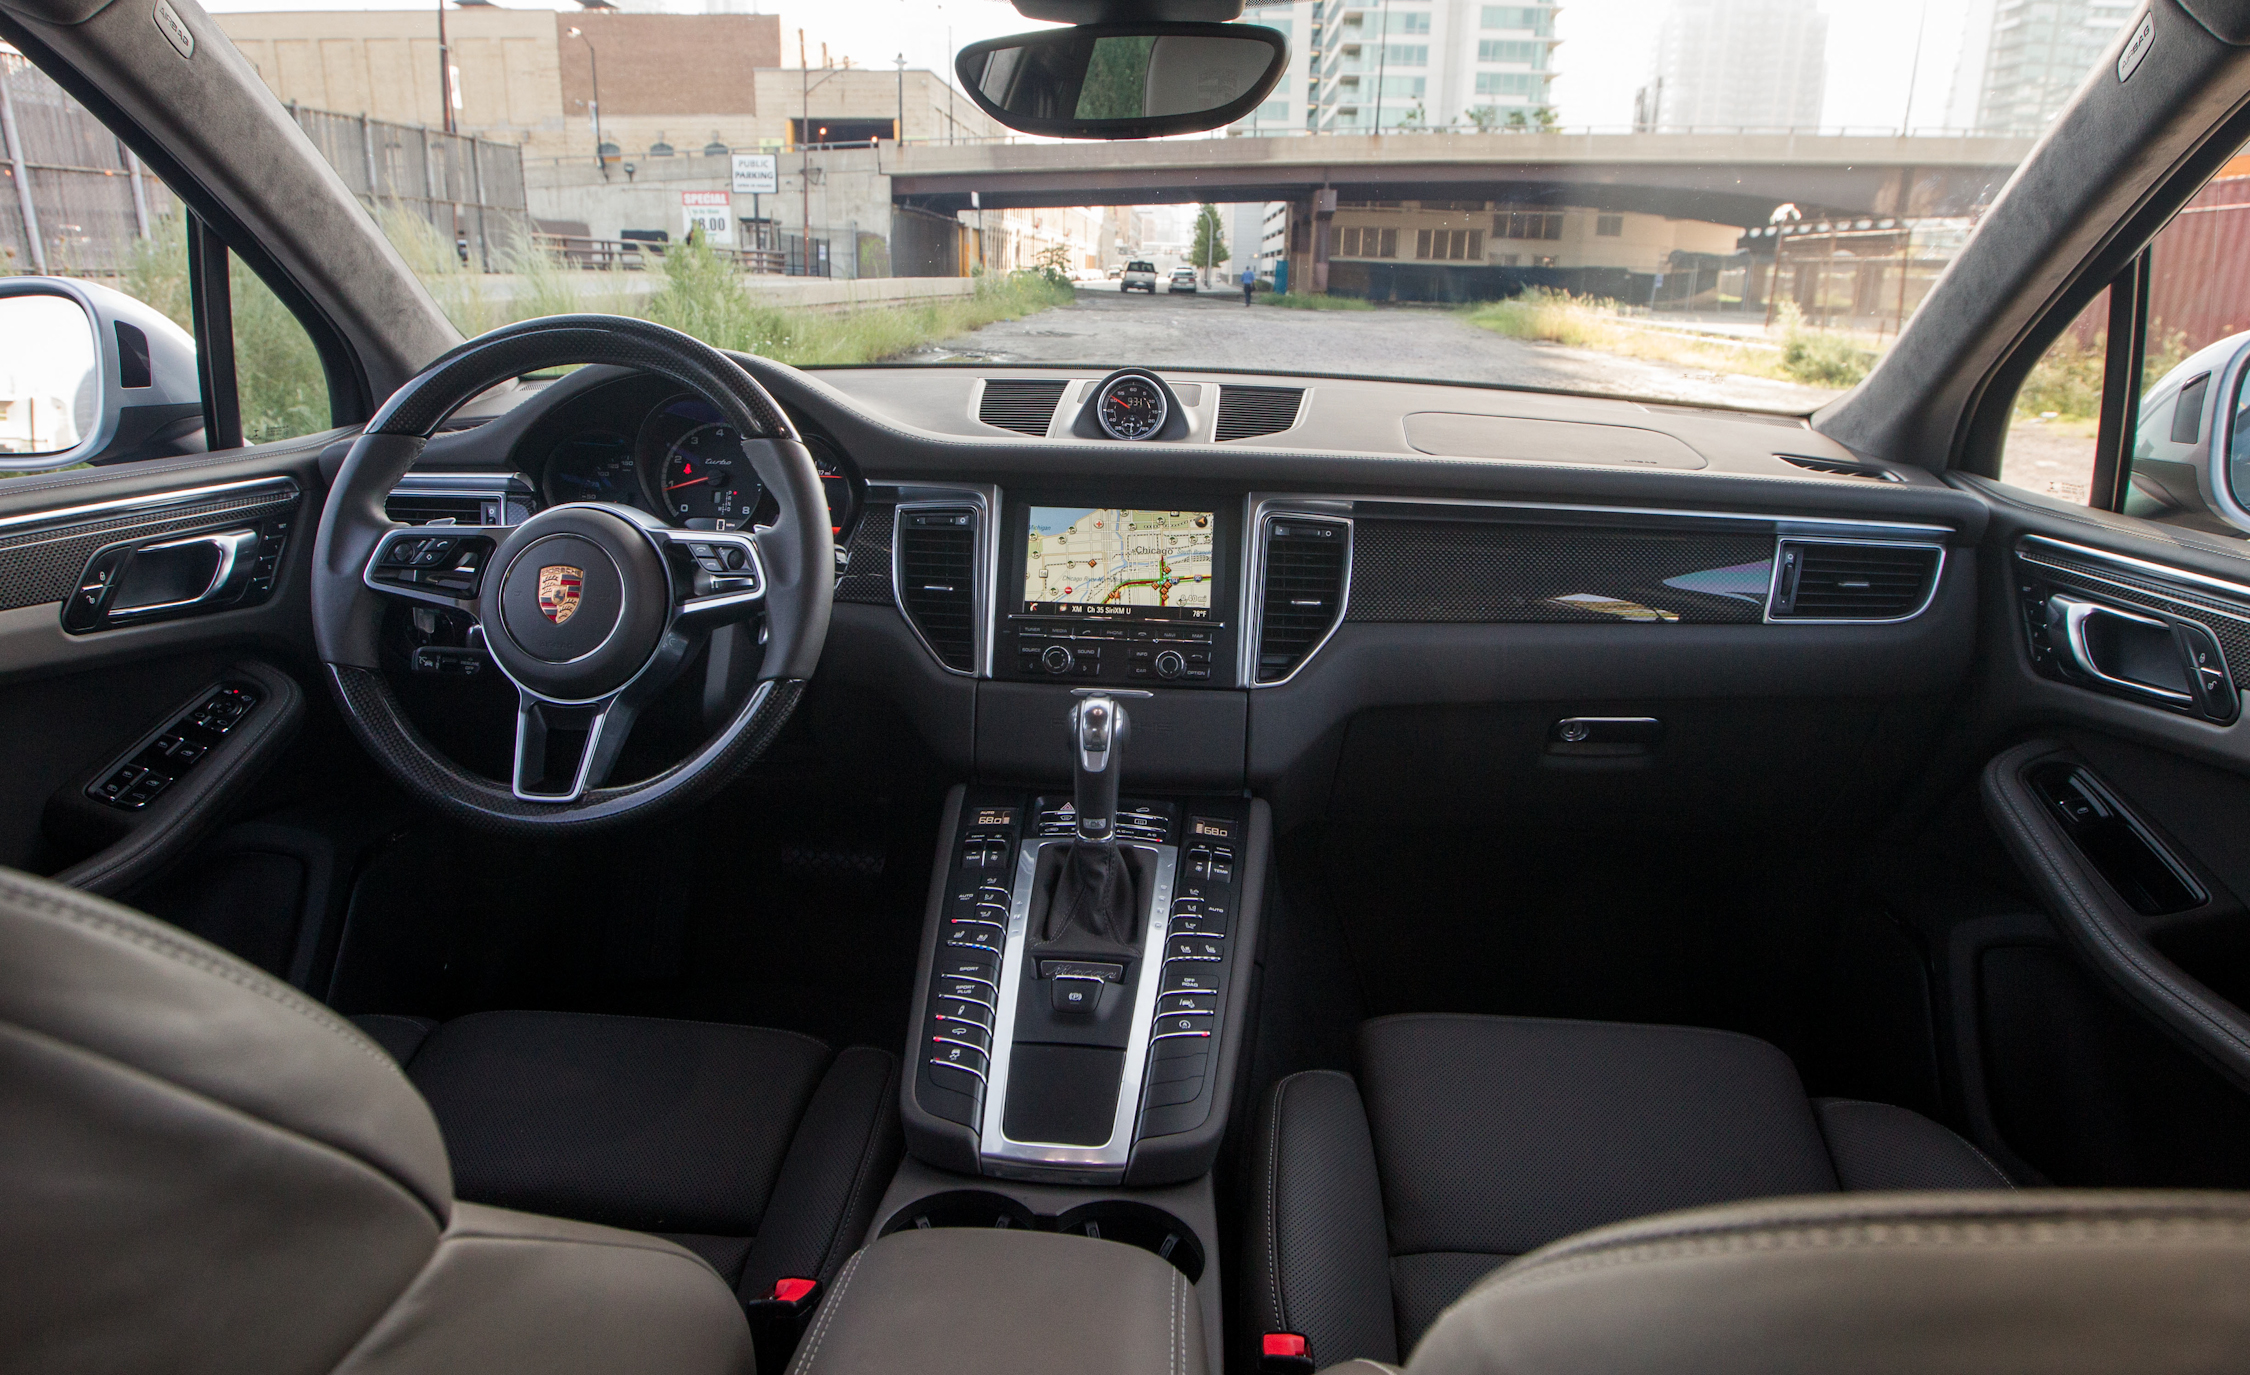 2015 Porsche Macan Turbo Interior (View 4 of 20)